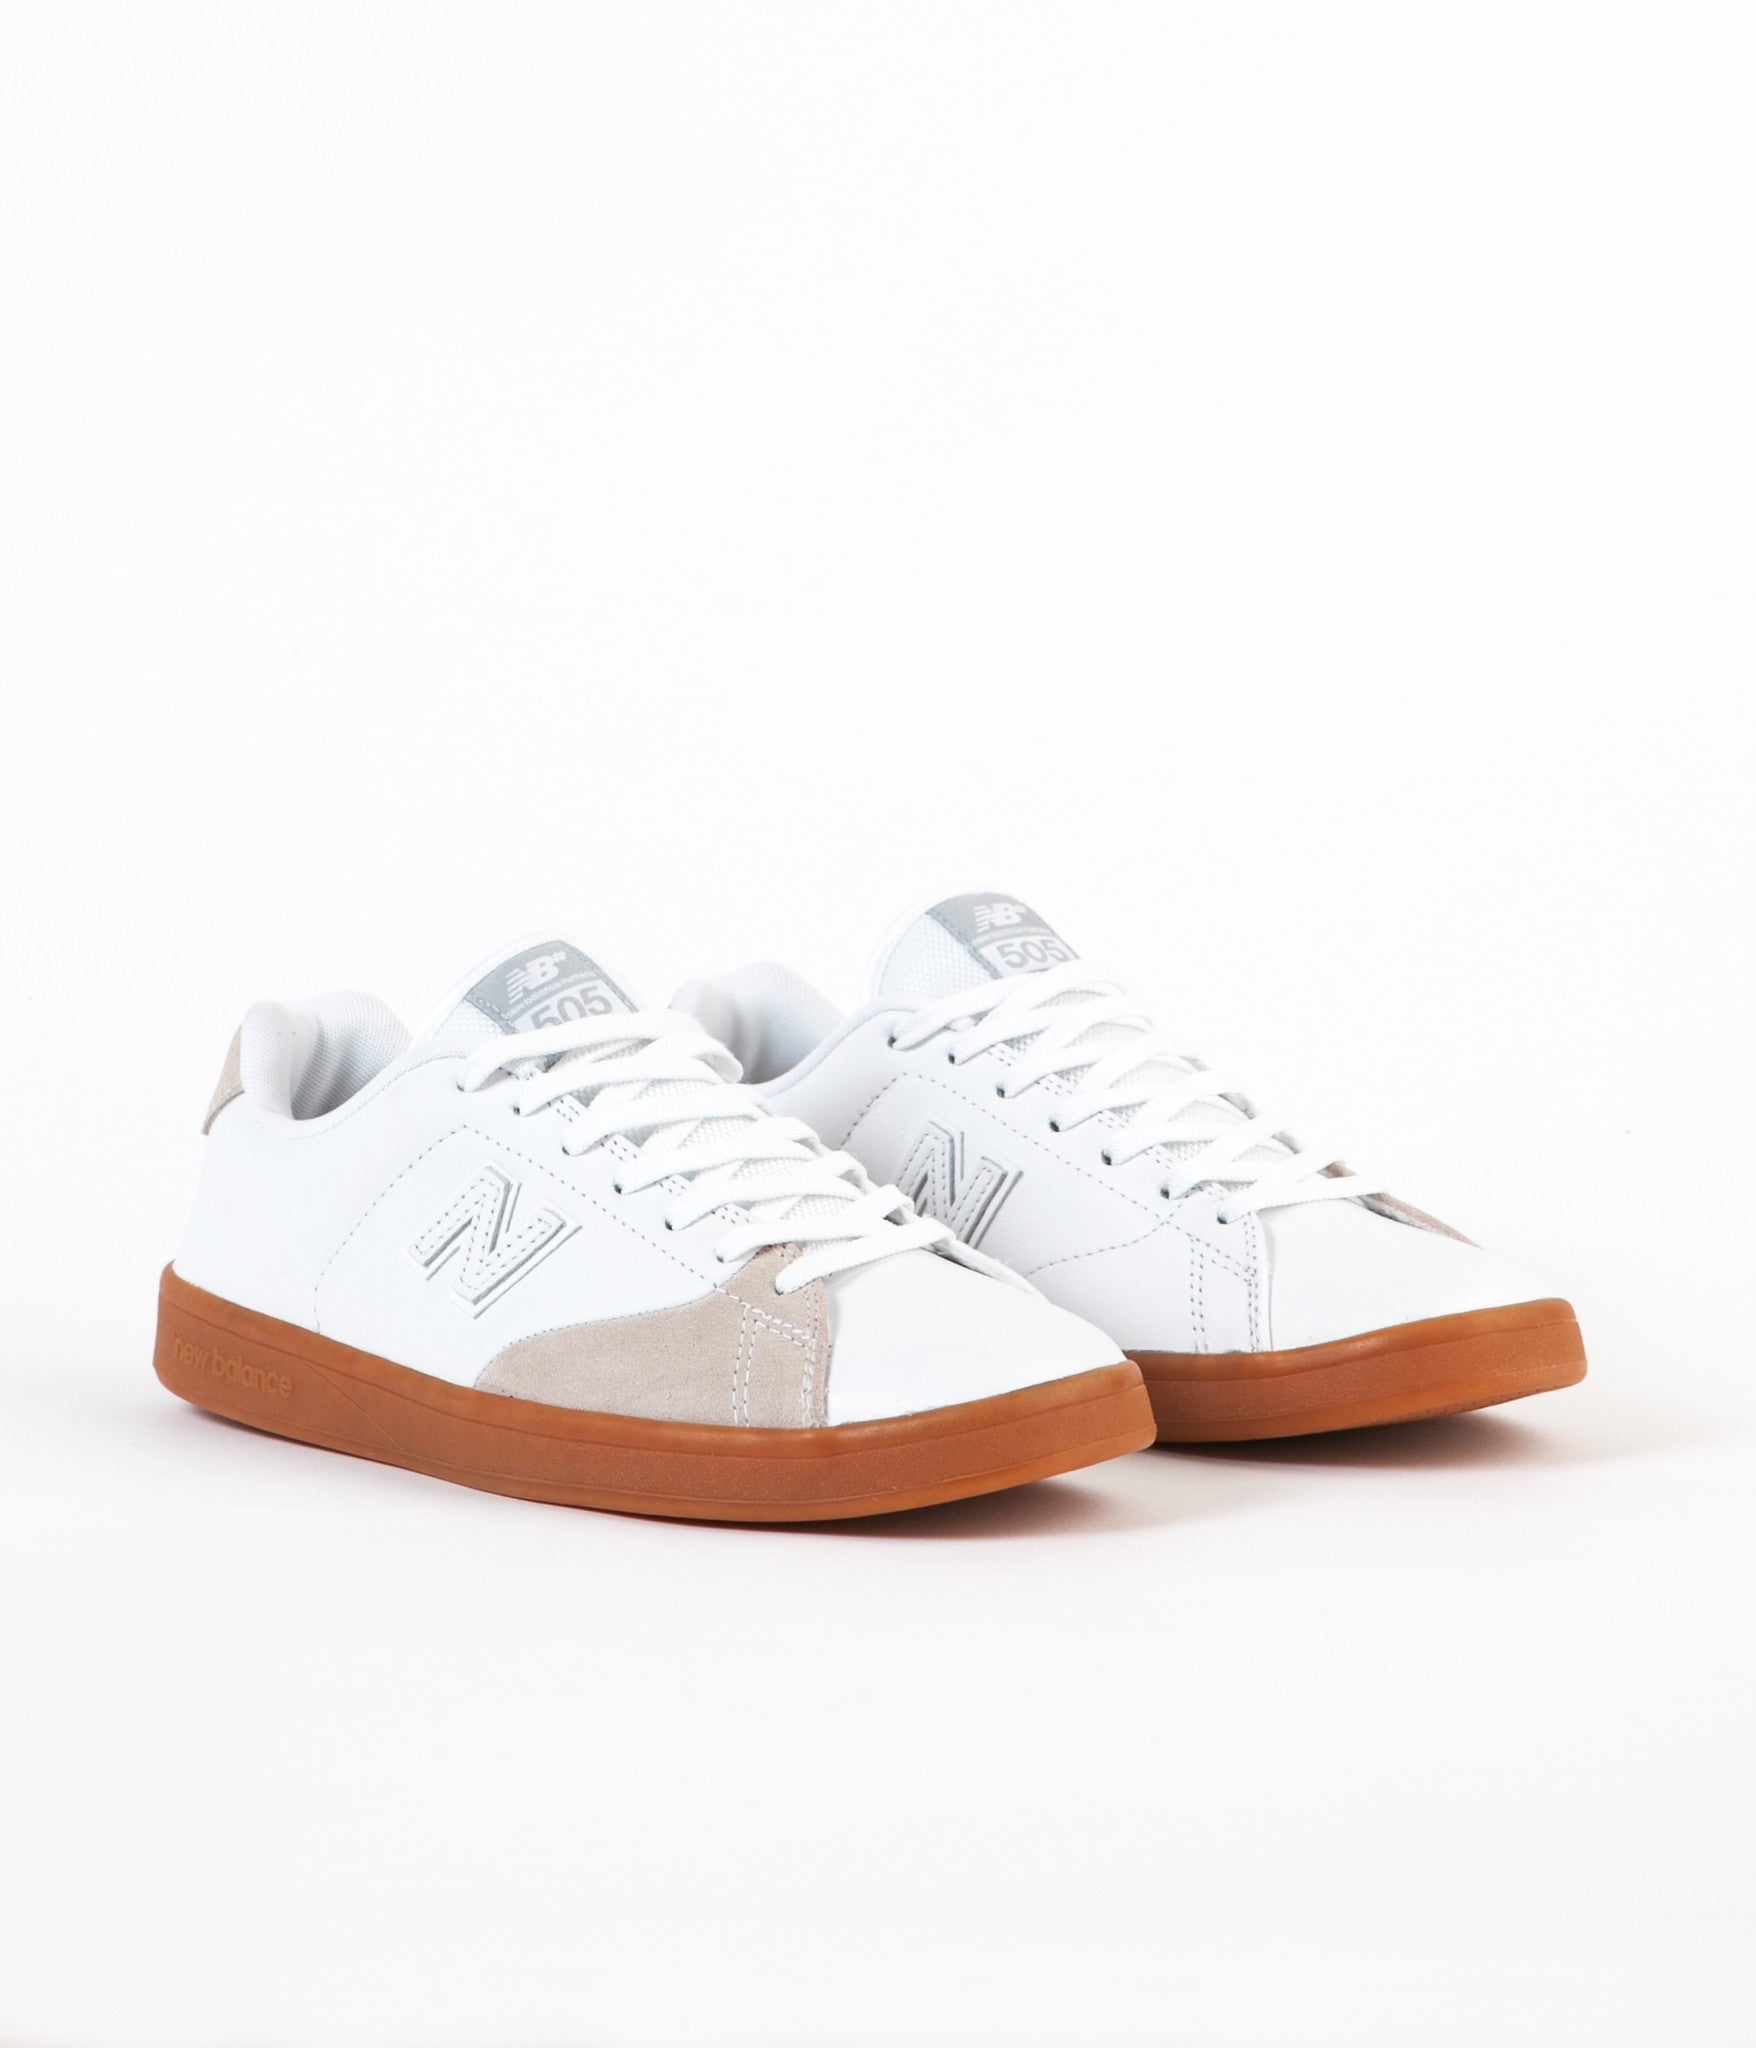 505 new balance shoes